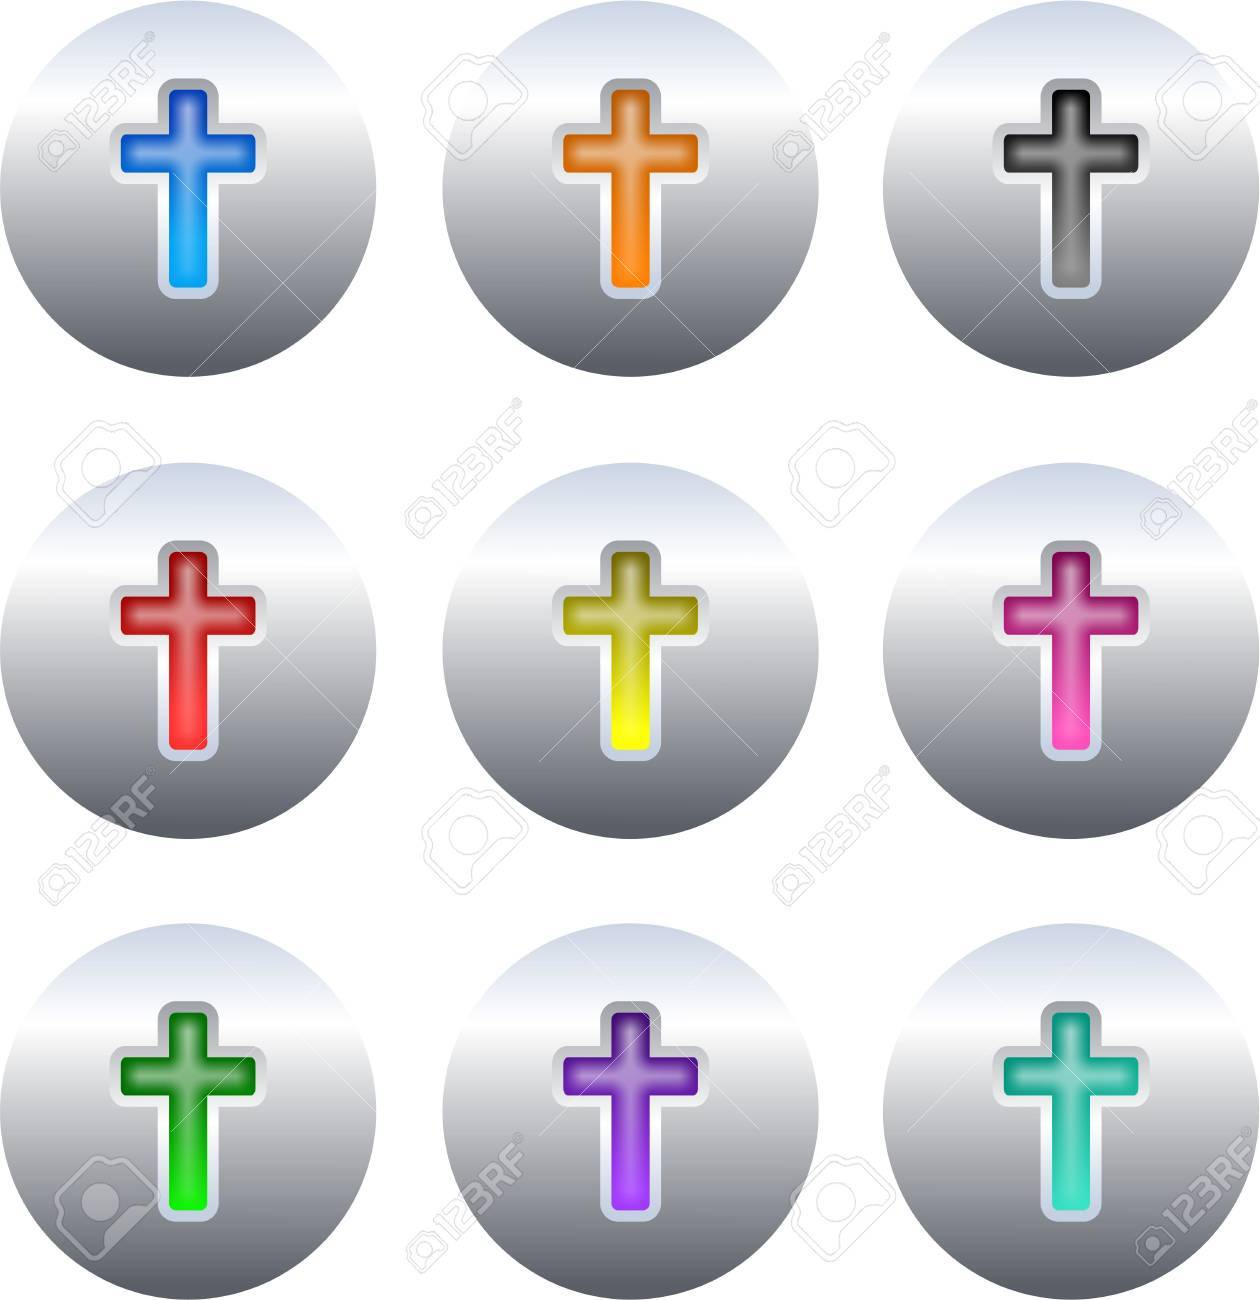 collection of colourful gel cross icons set on silver metallic buttons isolated on white Stock Photo - 2052366